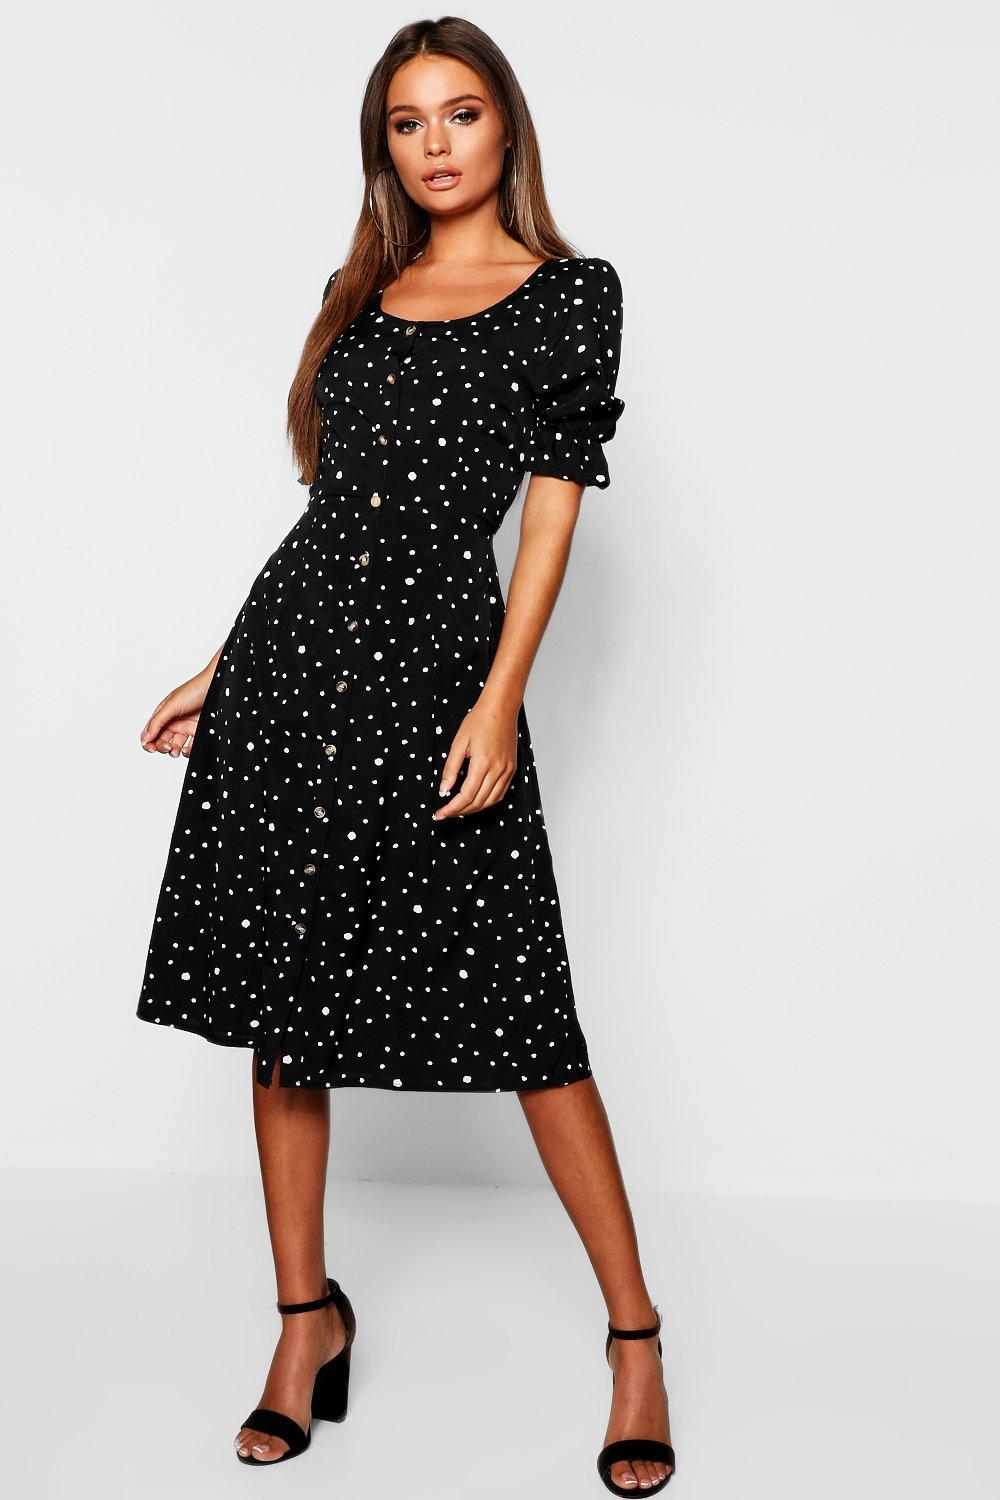 a76e1a28f36 Womens Dalmatian Polka Dot Button Through Midi Dress. Hover to zoom